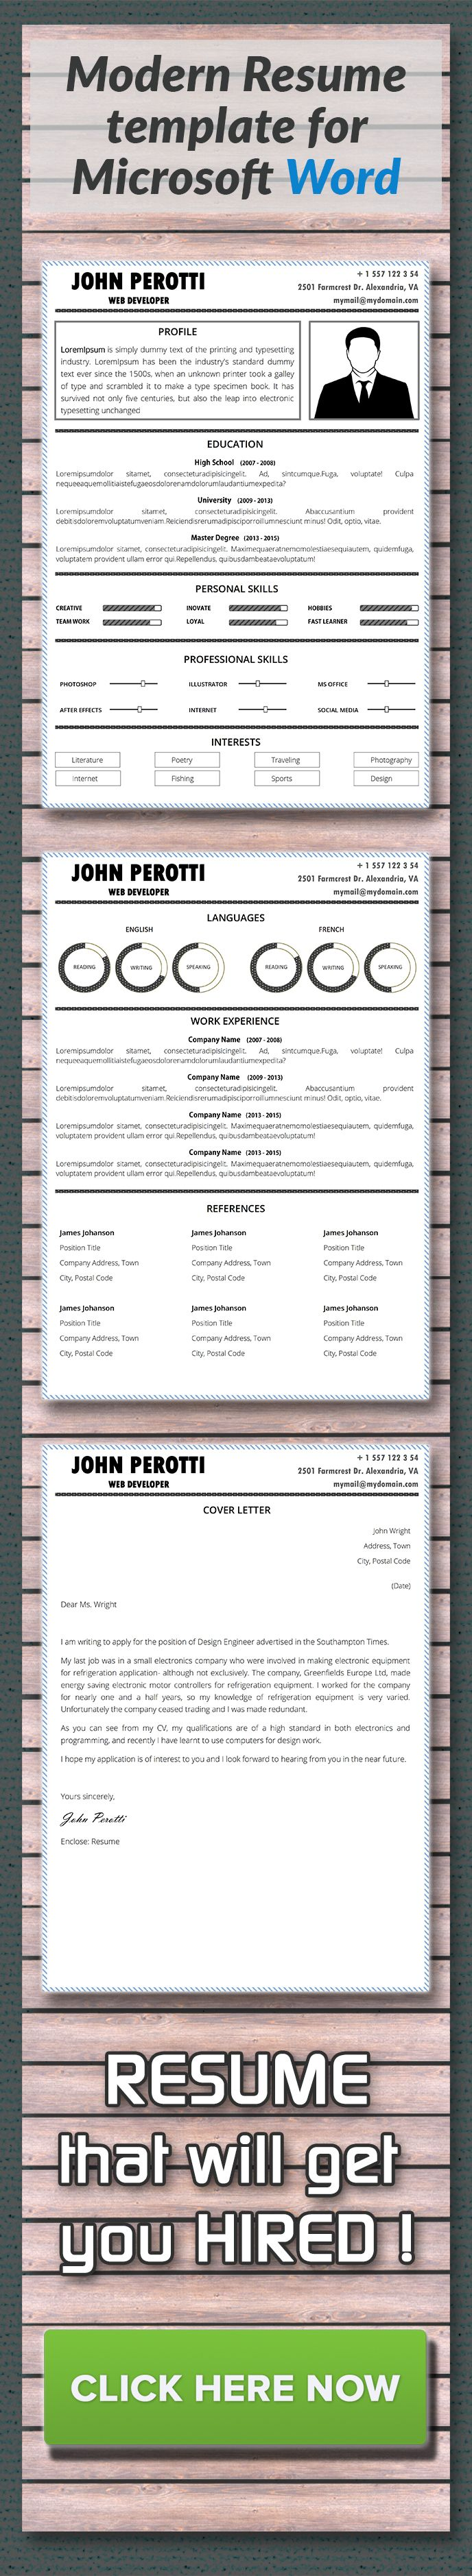 My Cv Resume 52 Best Resume Templates Images On Pinterest  Cv Resume Template .